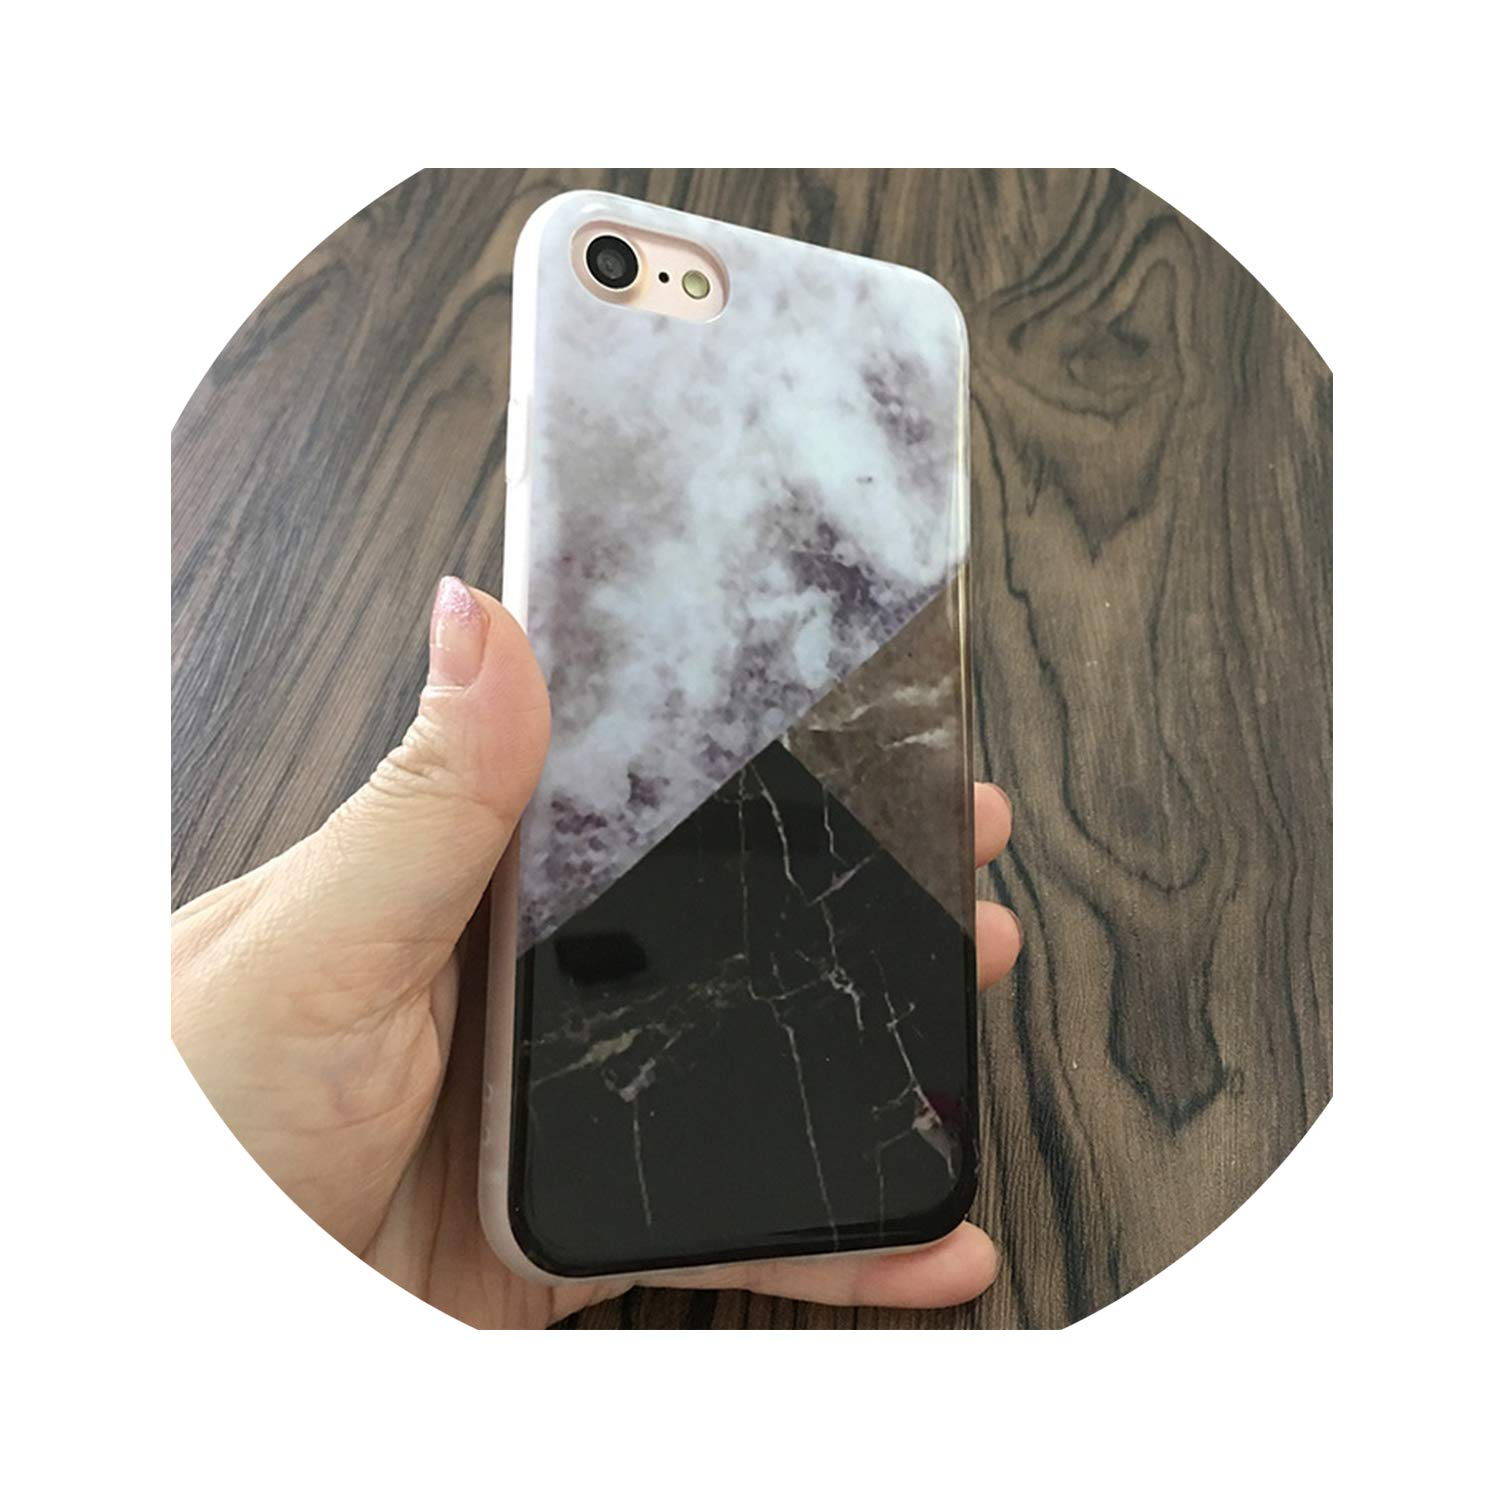 Marble Phone Case for iPhone 7 6 8 Plus 5s SE Graffiti Triangle Painted Phone Cover Back for iPhone 6 7 8 6S 5S,SpellGray,8Plus Plus 8